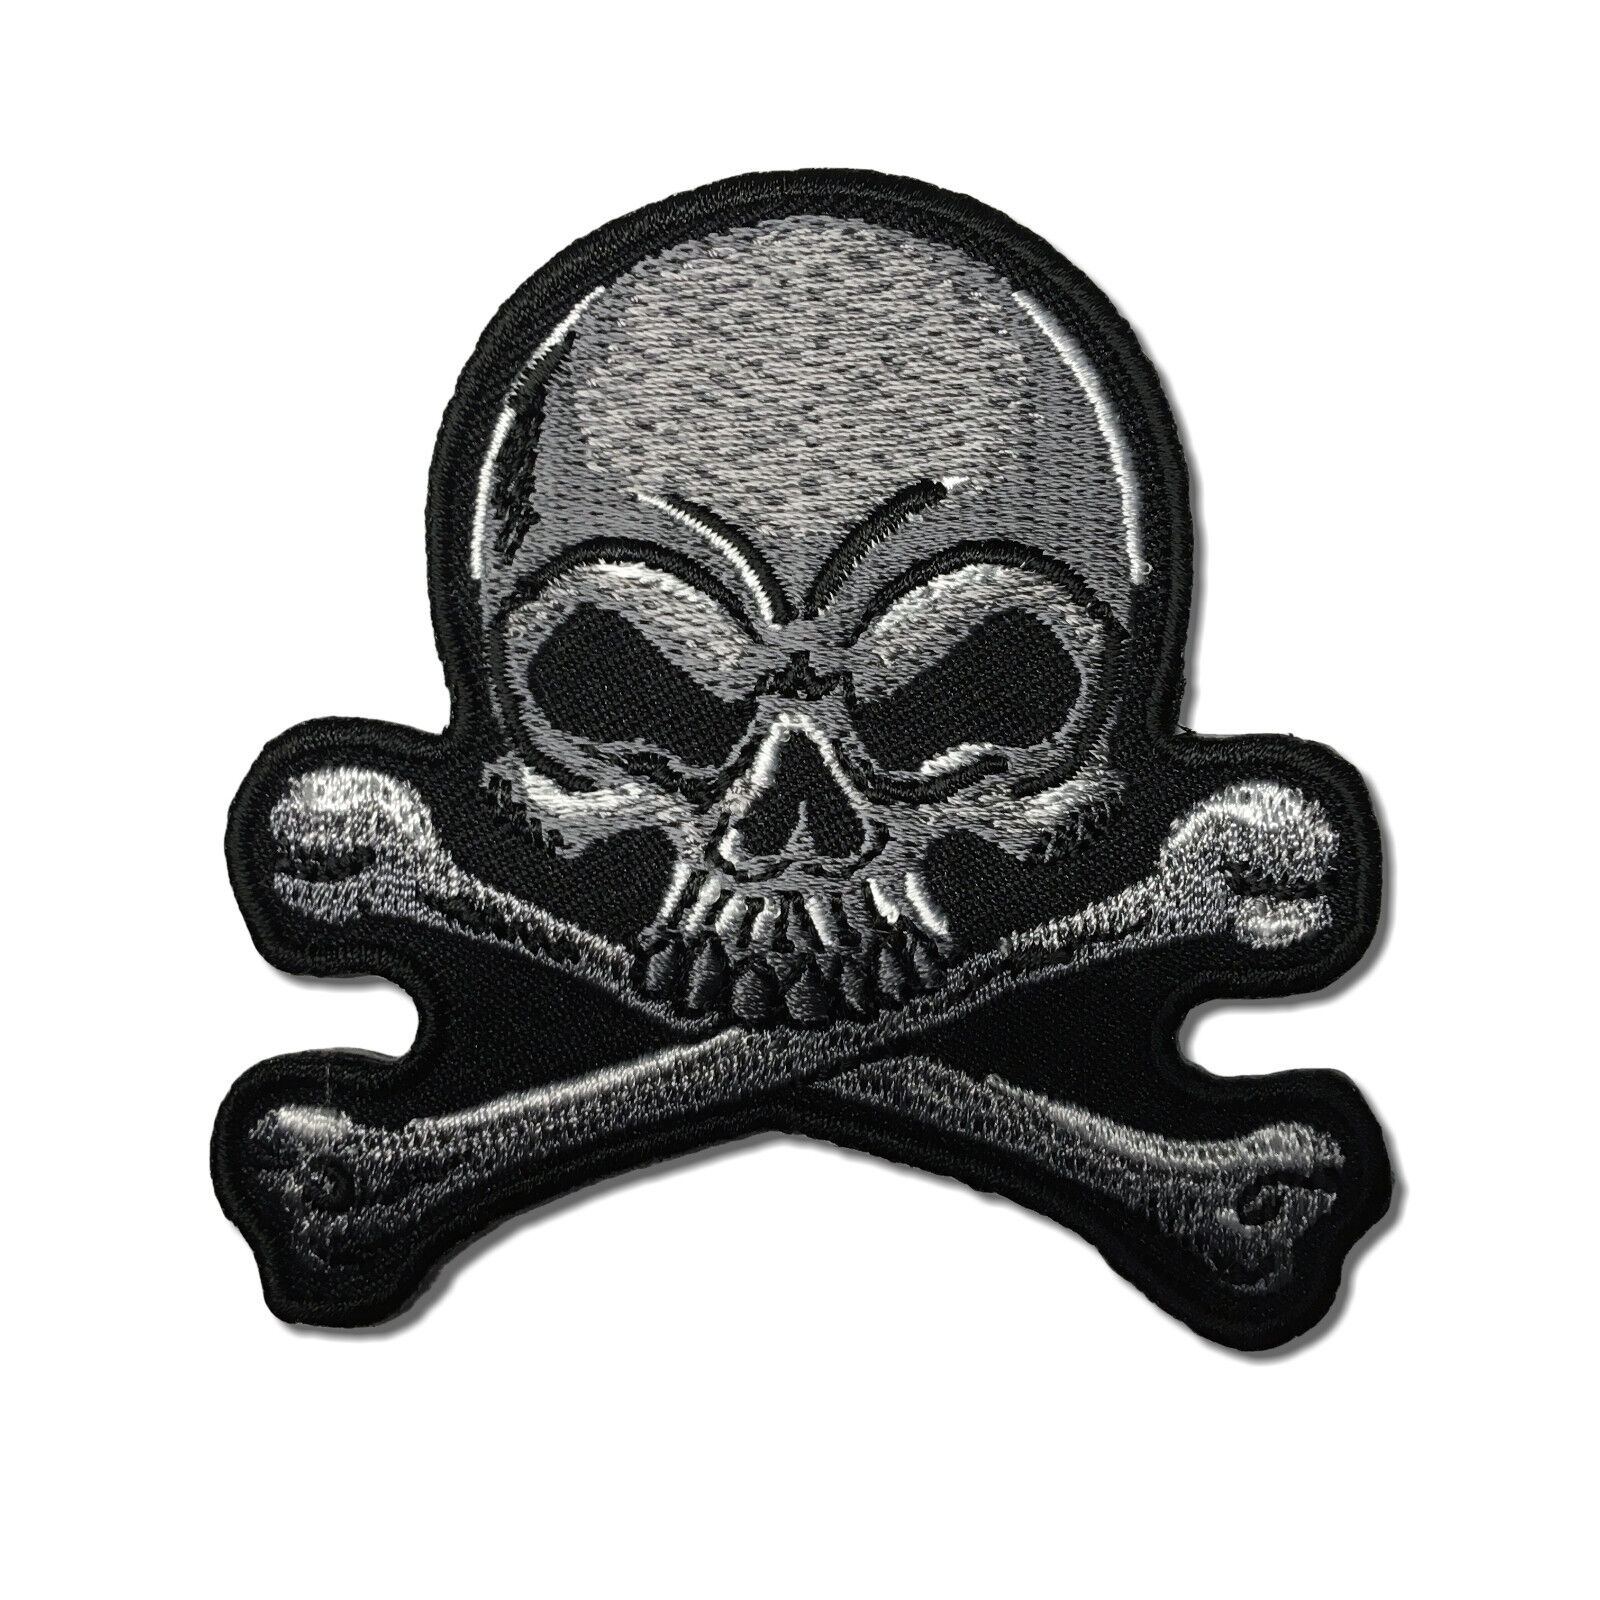 Iron On// Sew On Embroidered Patch Badge Rebel Skull and Crossbones On Red Circle